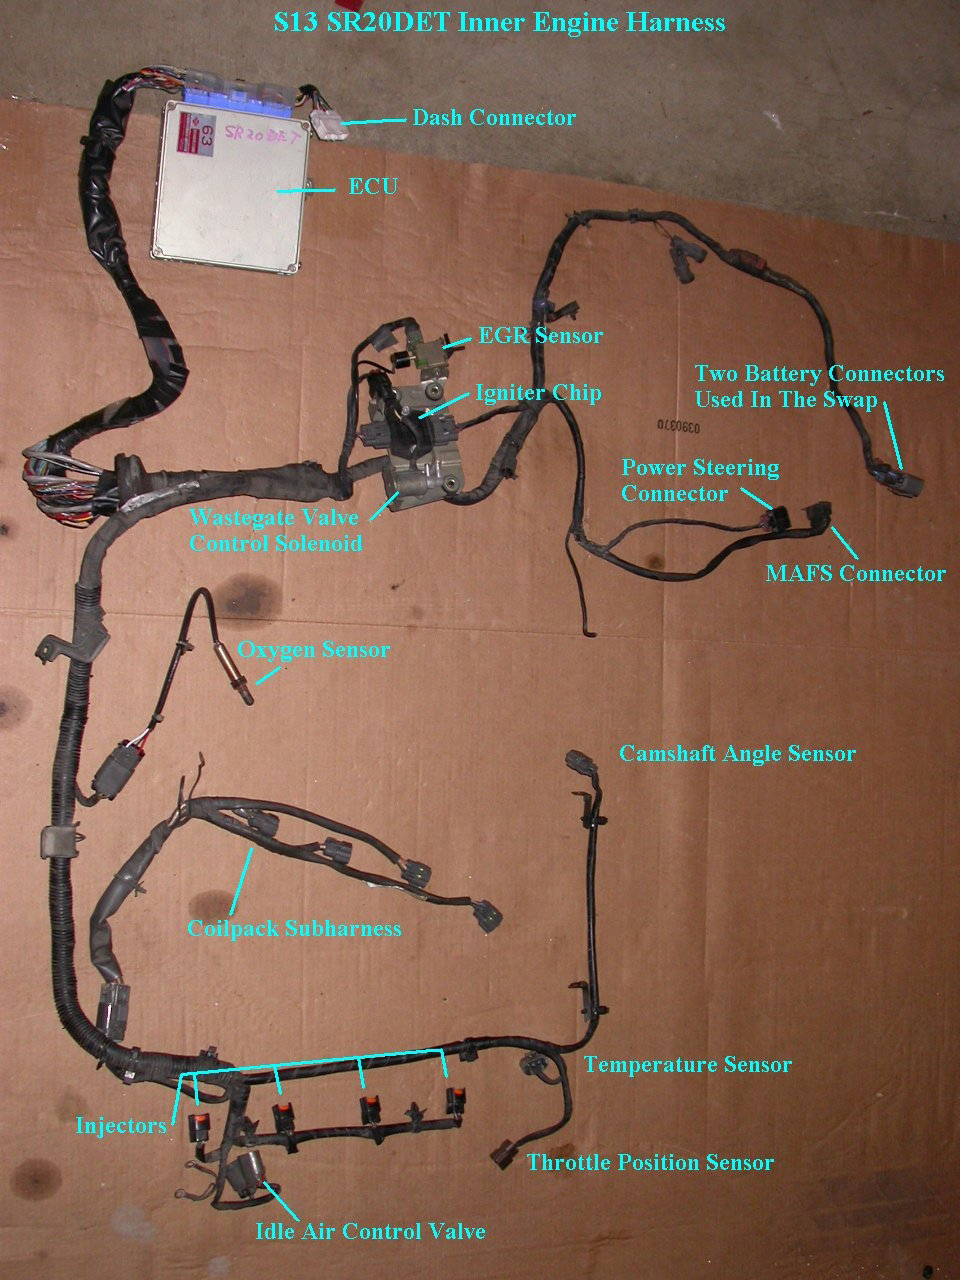 UNCUT sr20de_L vhc performance engine parts s13 sr20det wiring harness install at honlapkeszites.co